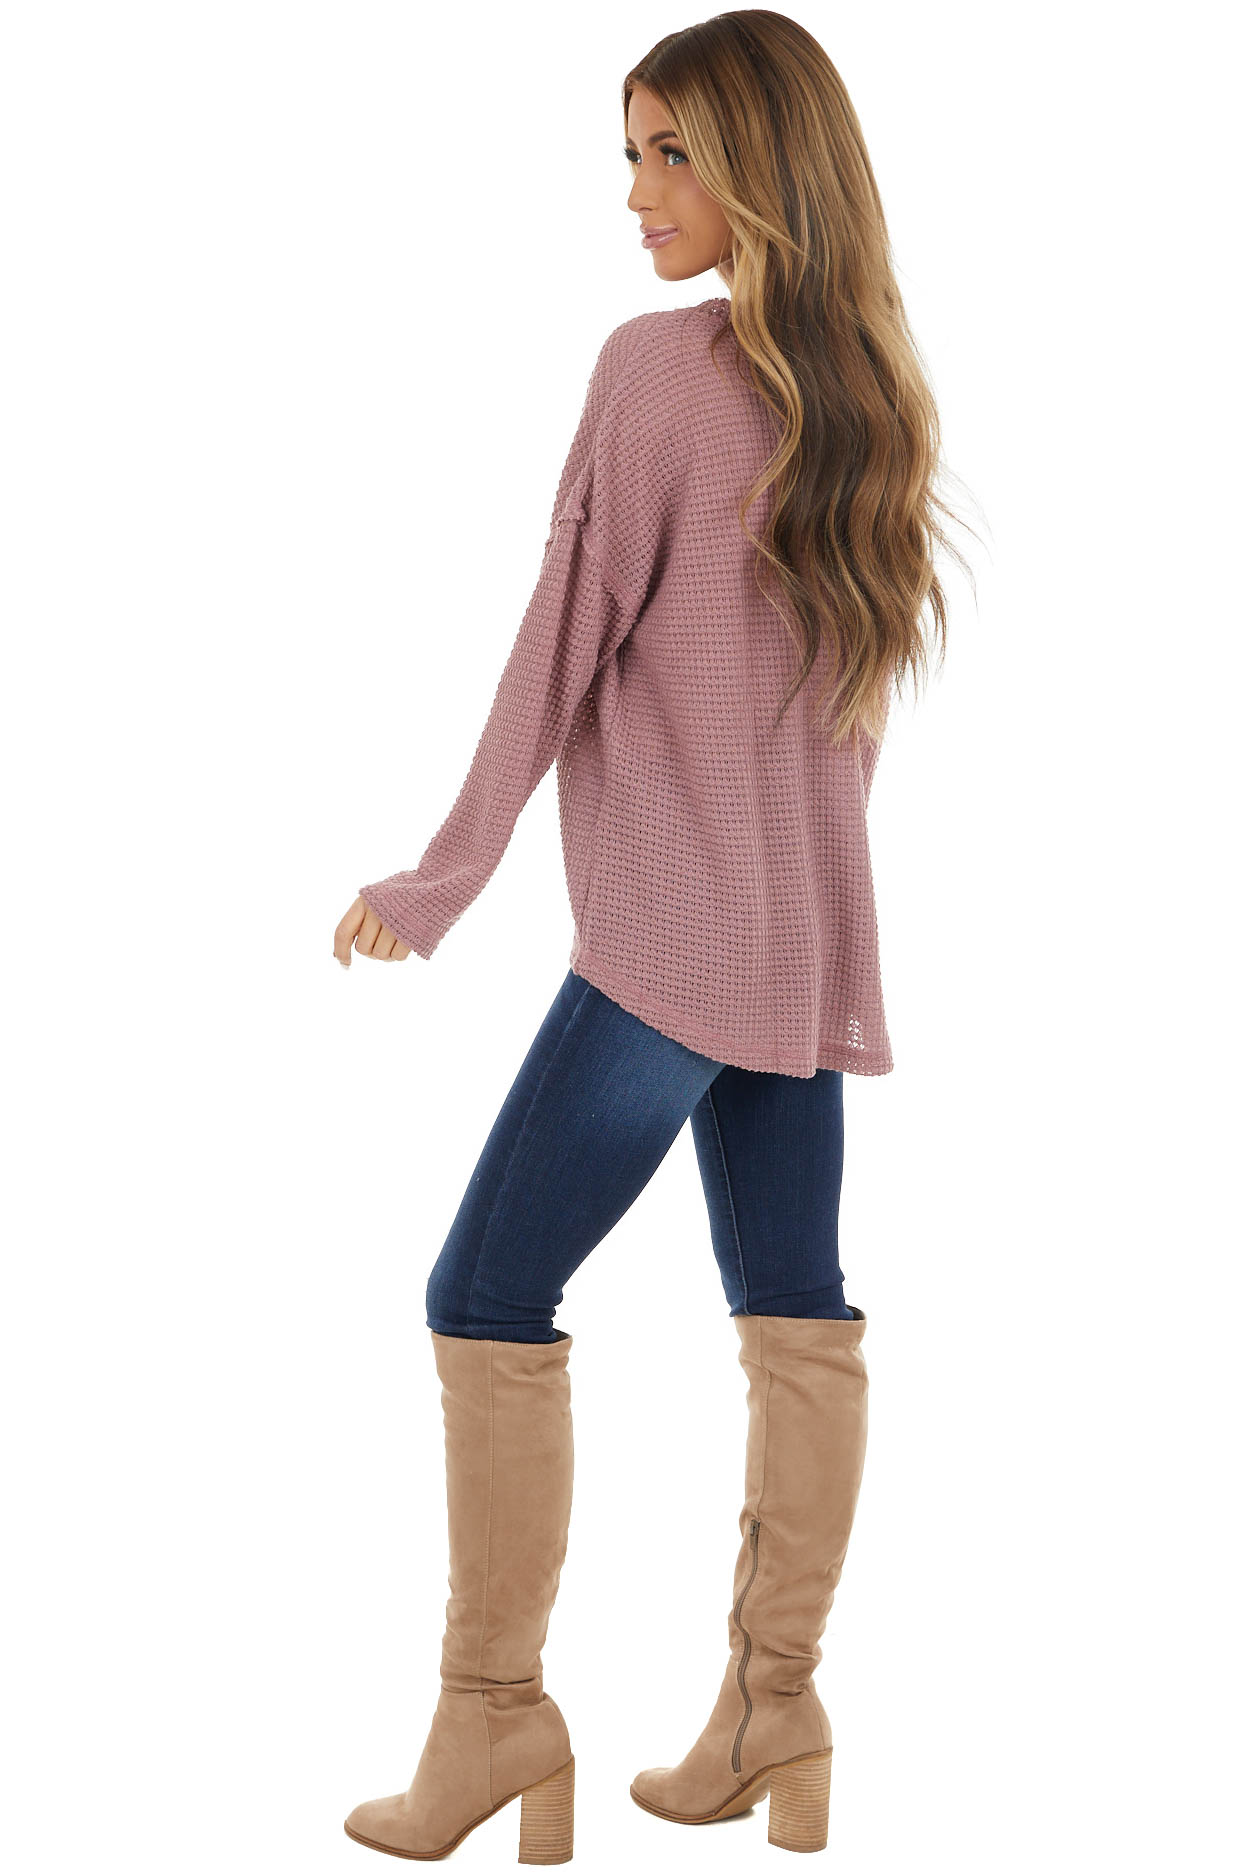 Dusty Rose Long Sleeve Waffle Knit Top with Button Detail